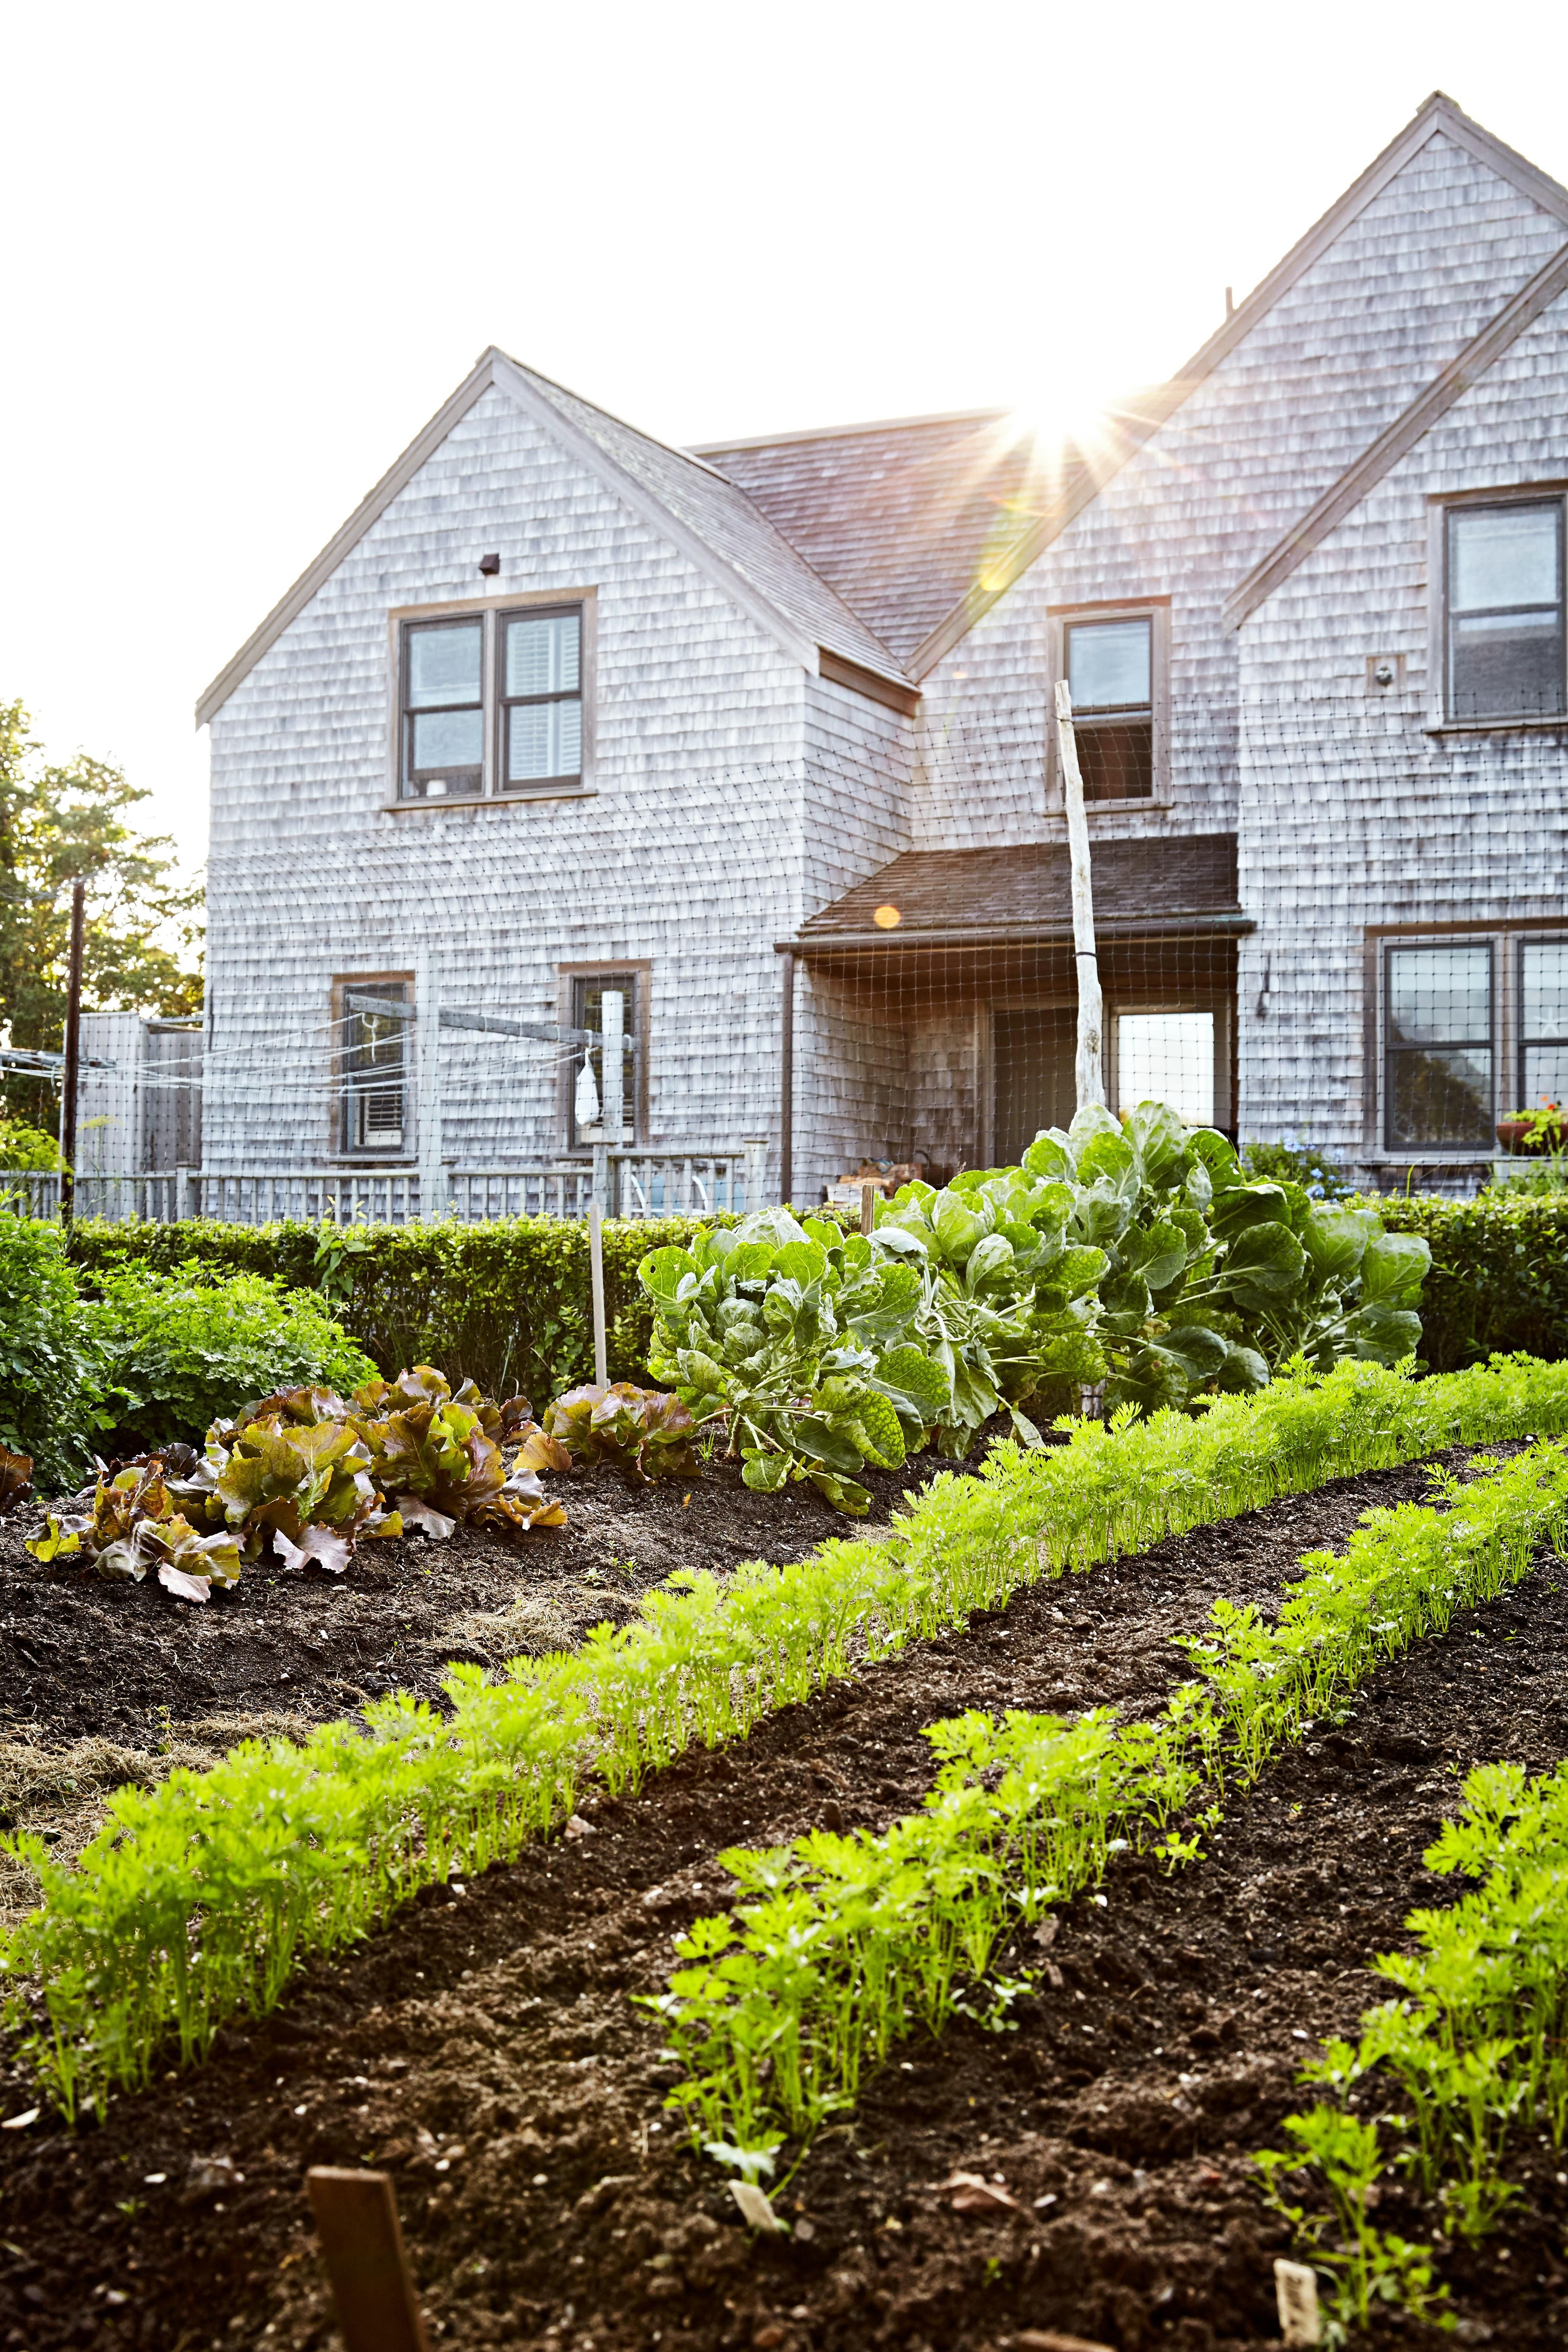 Ultimate Step-by-Step Guide to Vegetable Gardening Planting tomatoes, carrots, or cukes for the first time? If you're a novice, you're in luck. We have all the vegetable gardening tips you'll need to plan, prepare, plant, and maintain a successful garden.Planting tomatoes, carrots, or cukes for the first time? If yo...